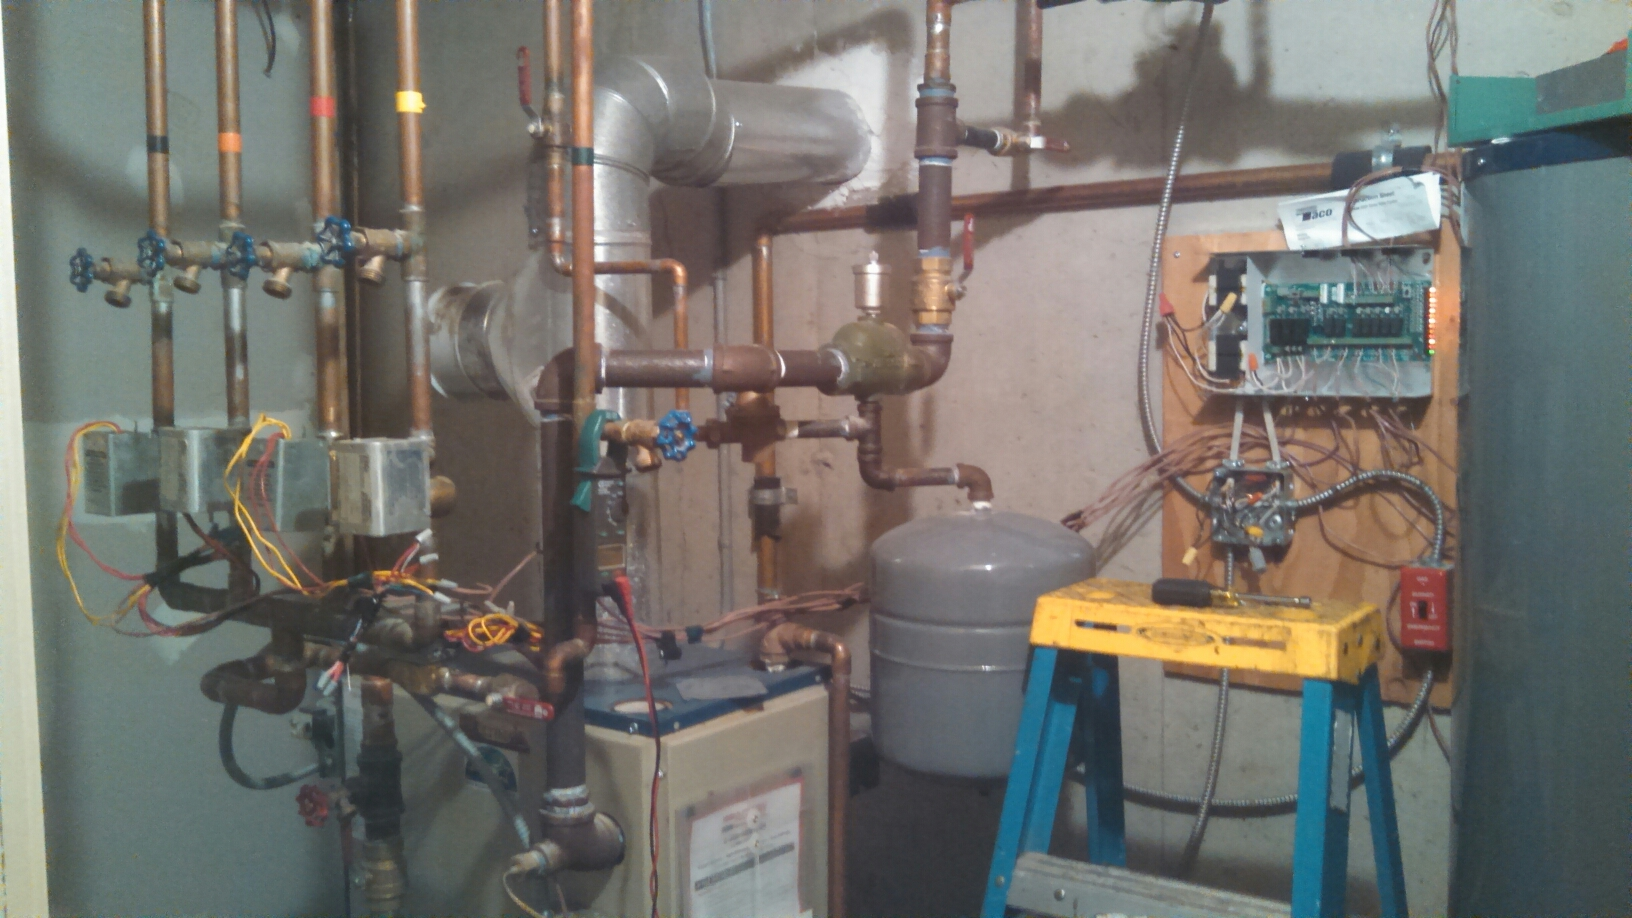 Boiler Furnace And Air Conditioner Repair In Warwick Ny